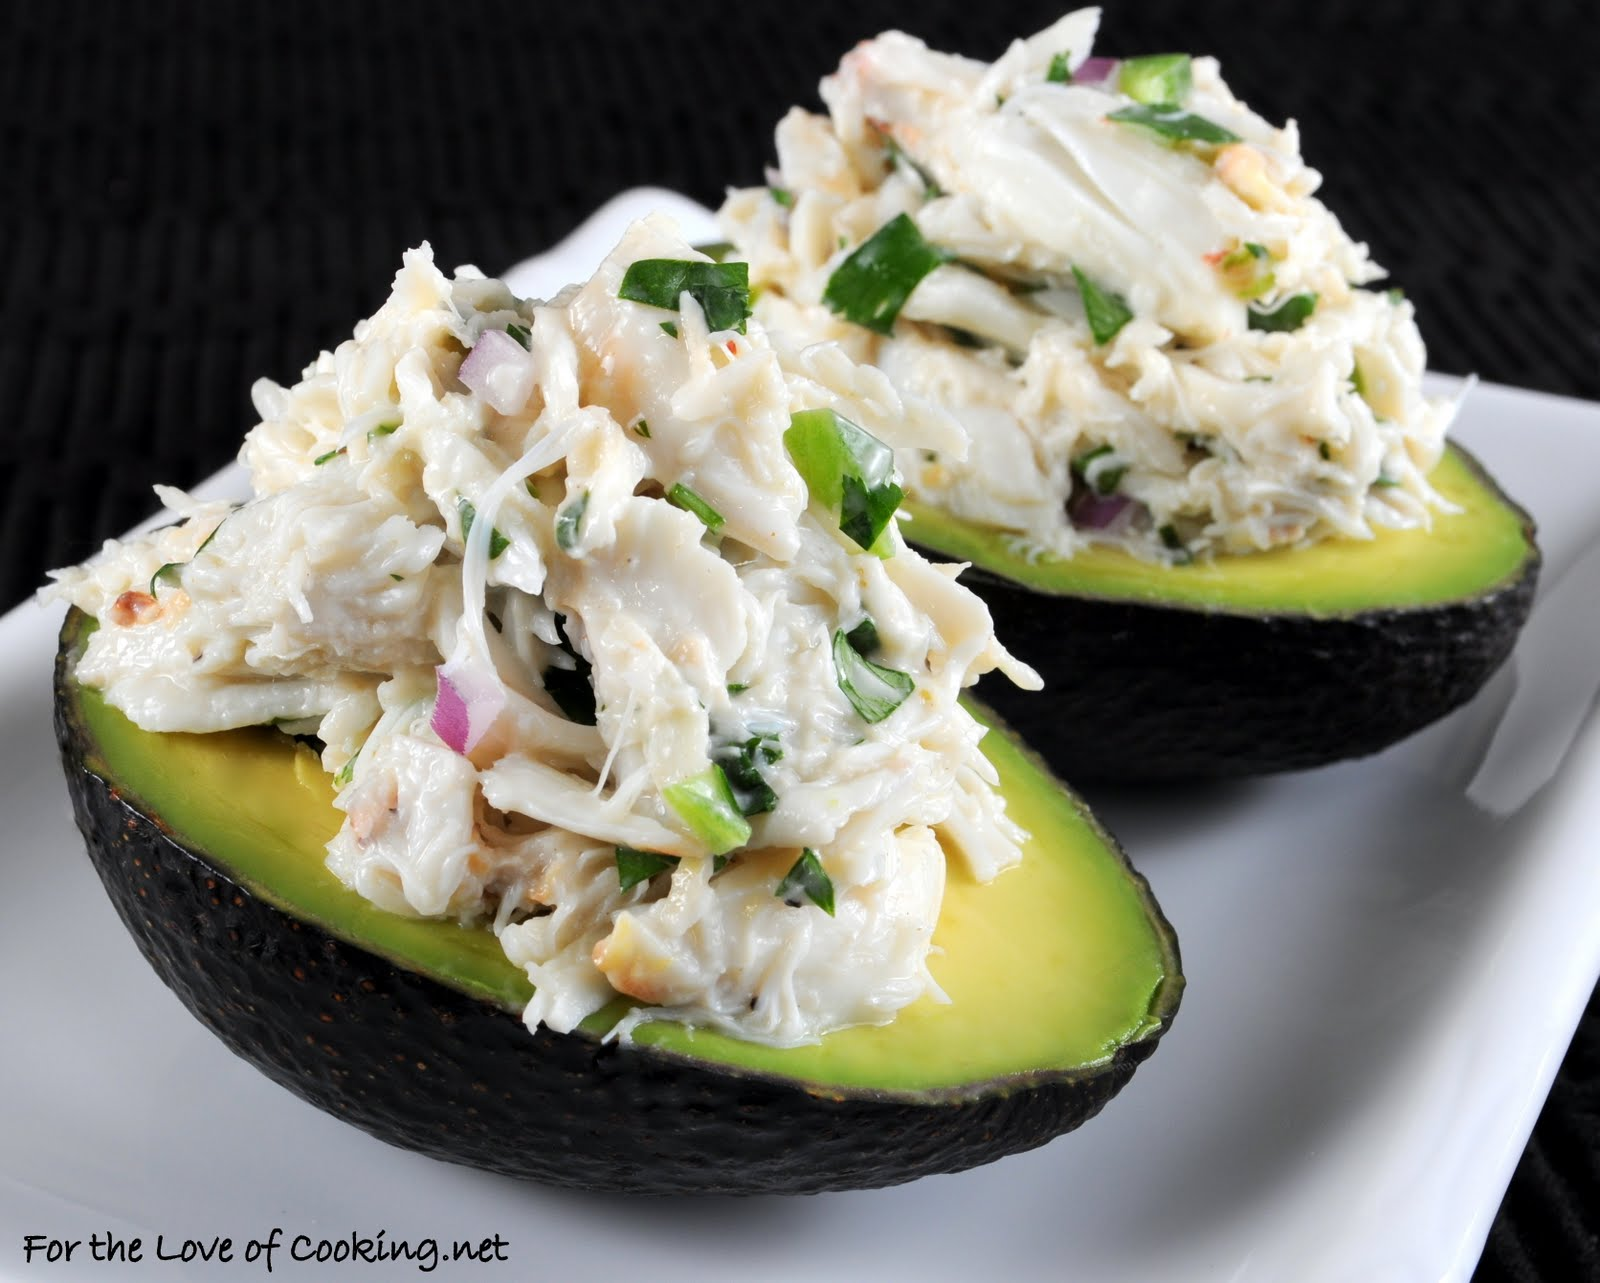 Cilantro and Lime Crab Salad in Avocado Halves | For the ...